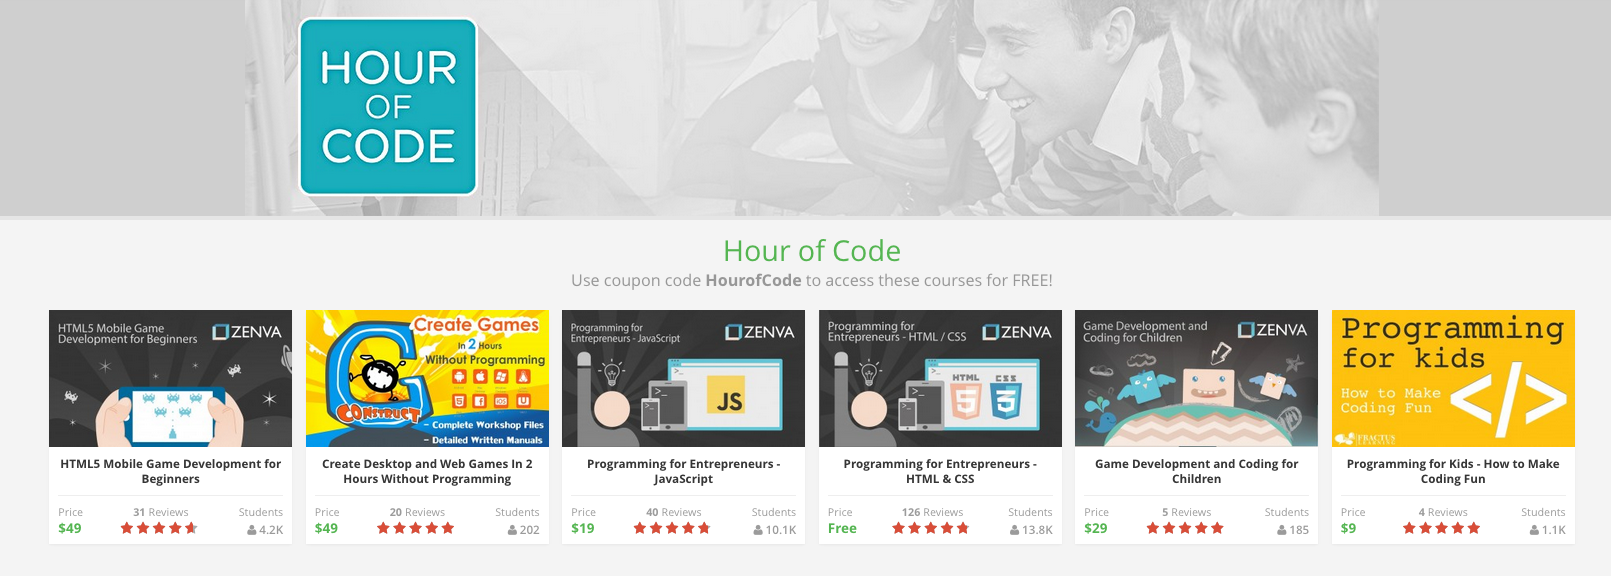 How Zenva is supporting the Hour of Code initiative